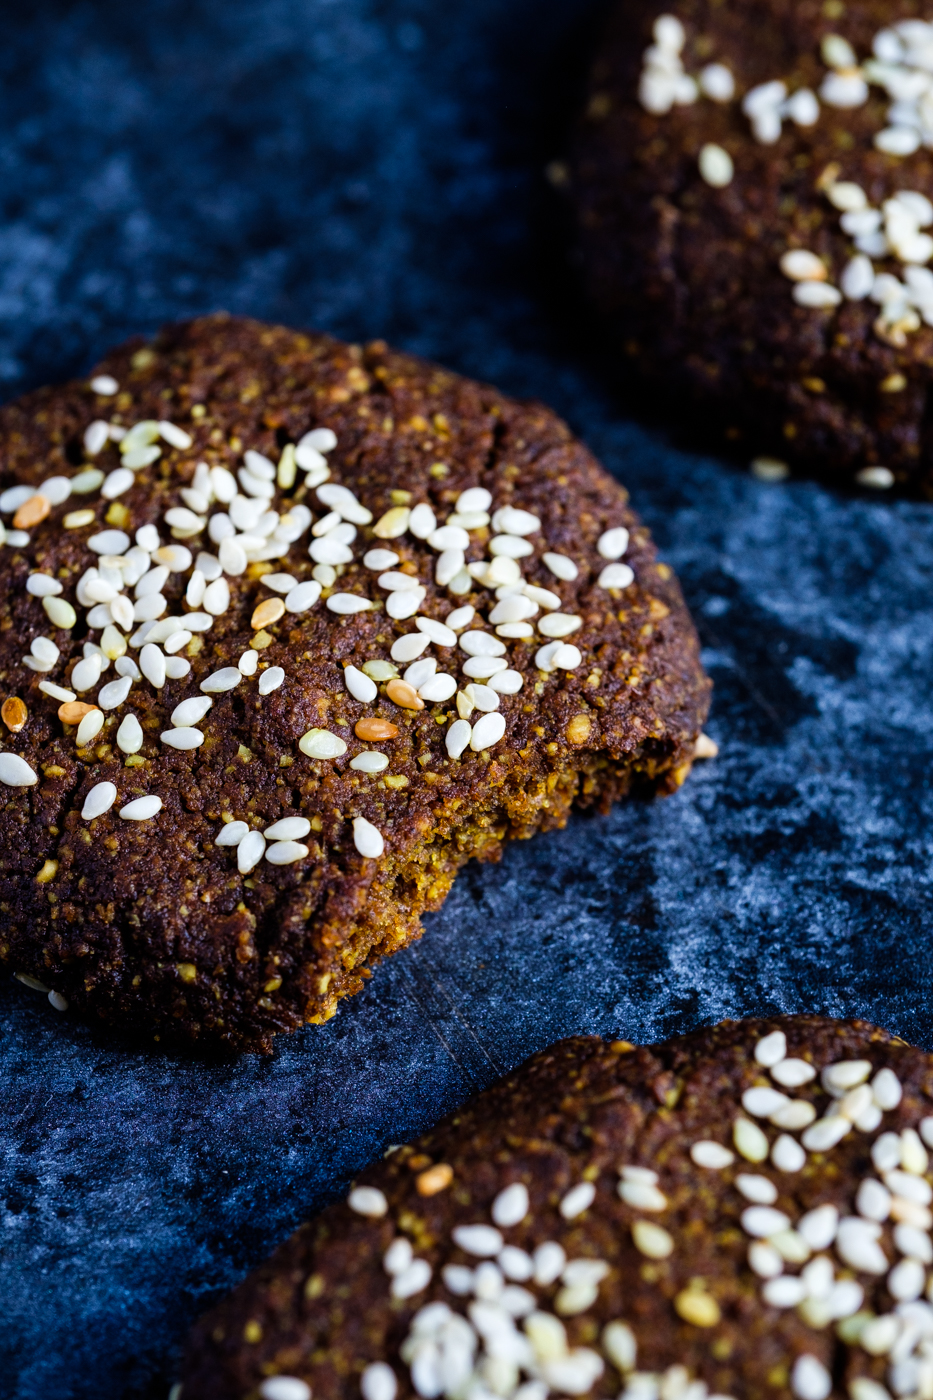 Grain Free Olive Oil Sesame Cookies Creative In My Kitchen Via This Post Contains Affiliated Links Which Means I Get A Small Commission If You Choose To Purchase Something One Of At No Extra Cost